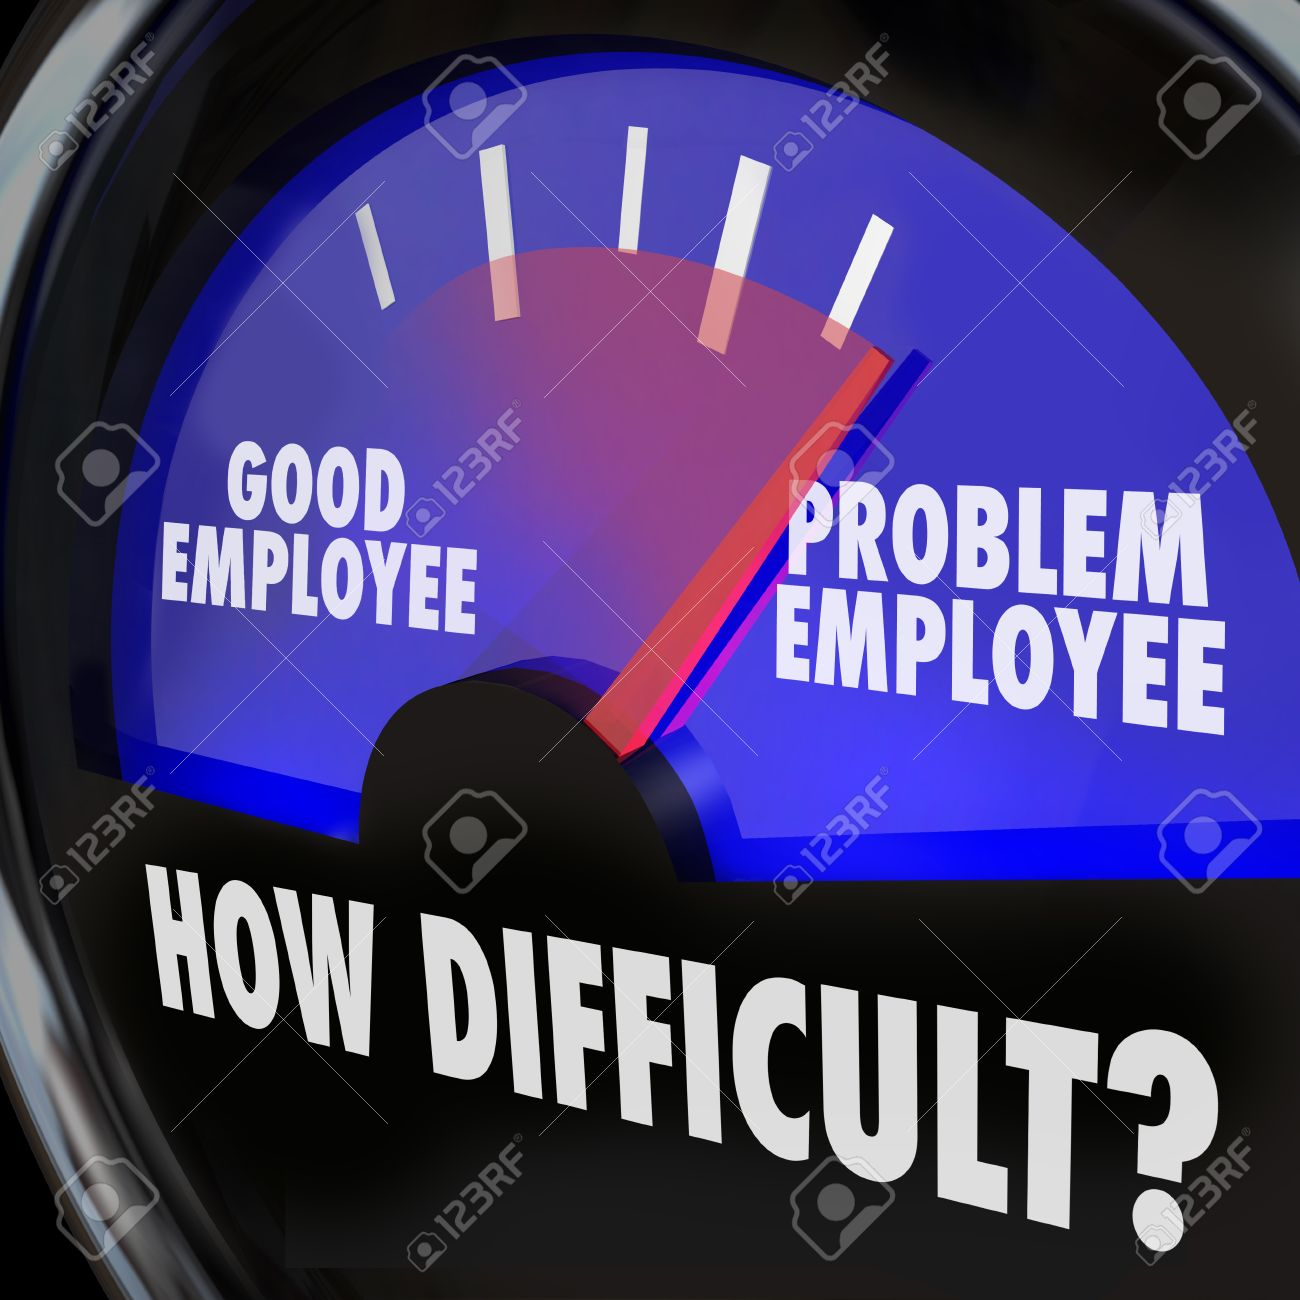 problem employee vs good worker words on gauge measuring difficult problem employee vs good worker words on gauge measuring difficult people in workplace stock photo